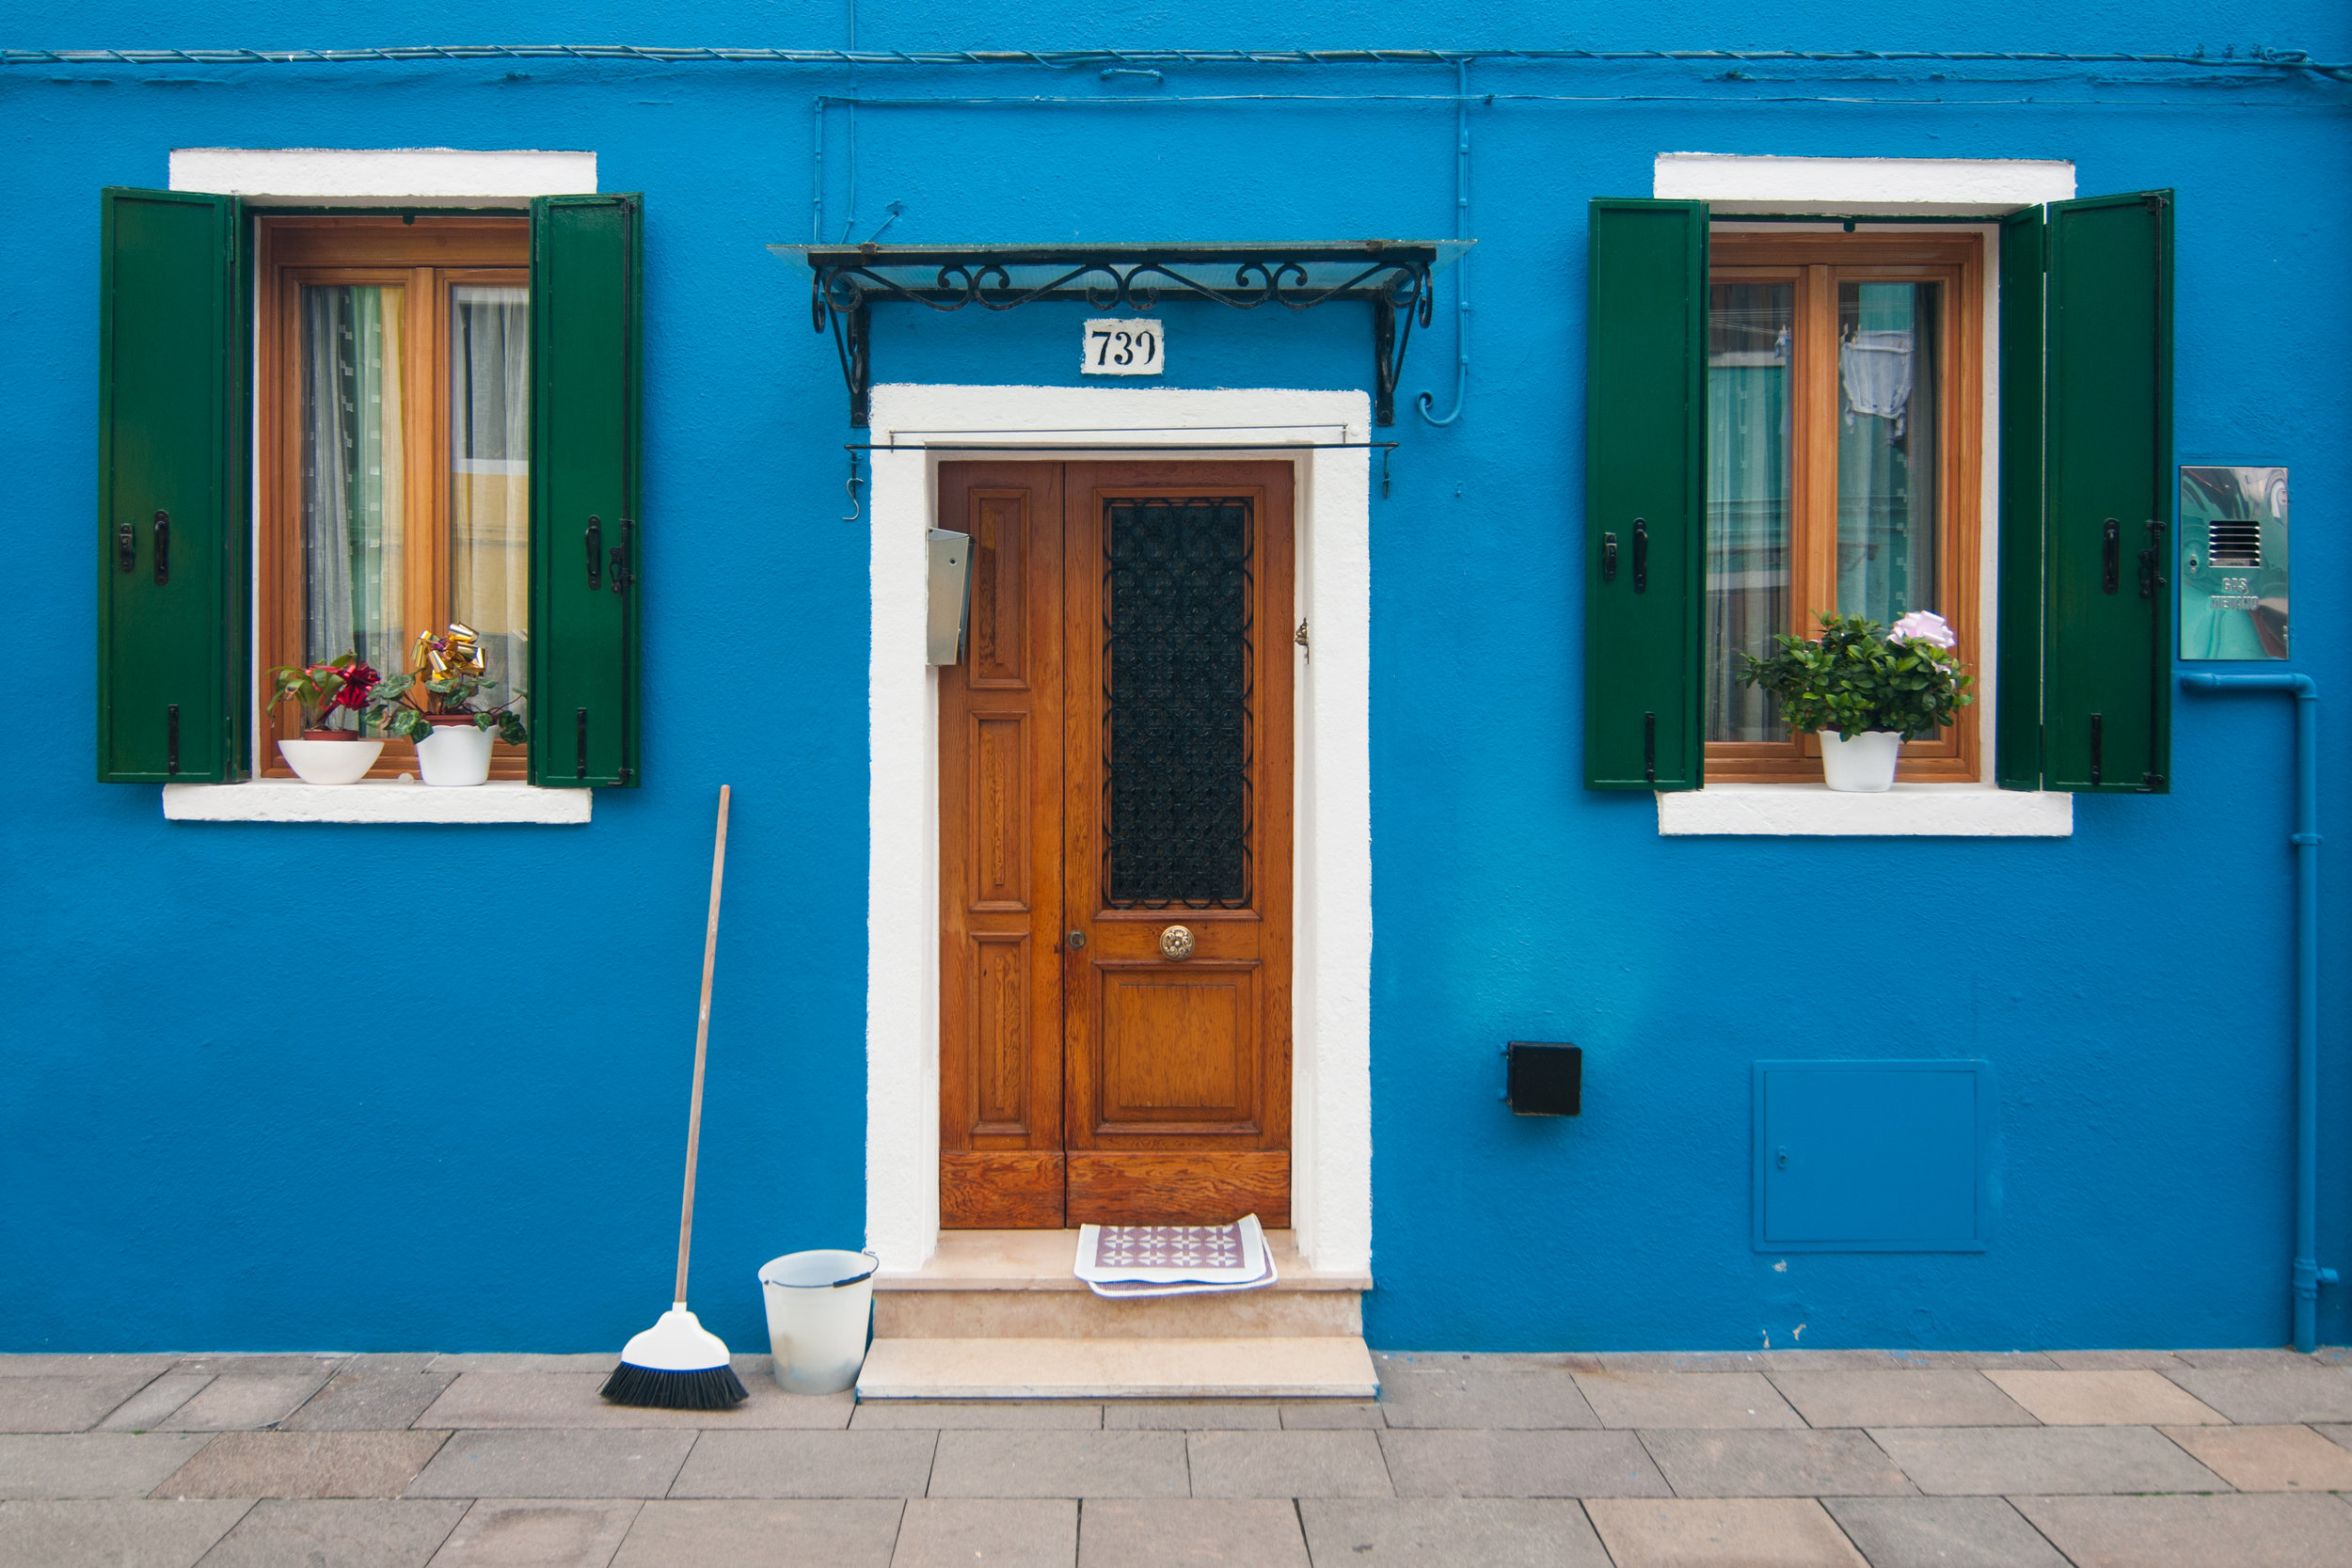 A blue house with a broom normally used to clean the front door of the houses in the island of Burano, Venice, Italy.